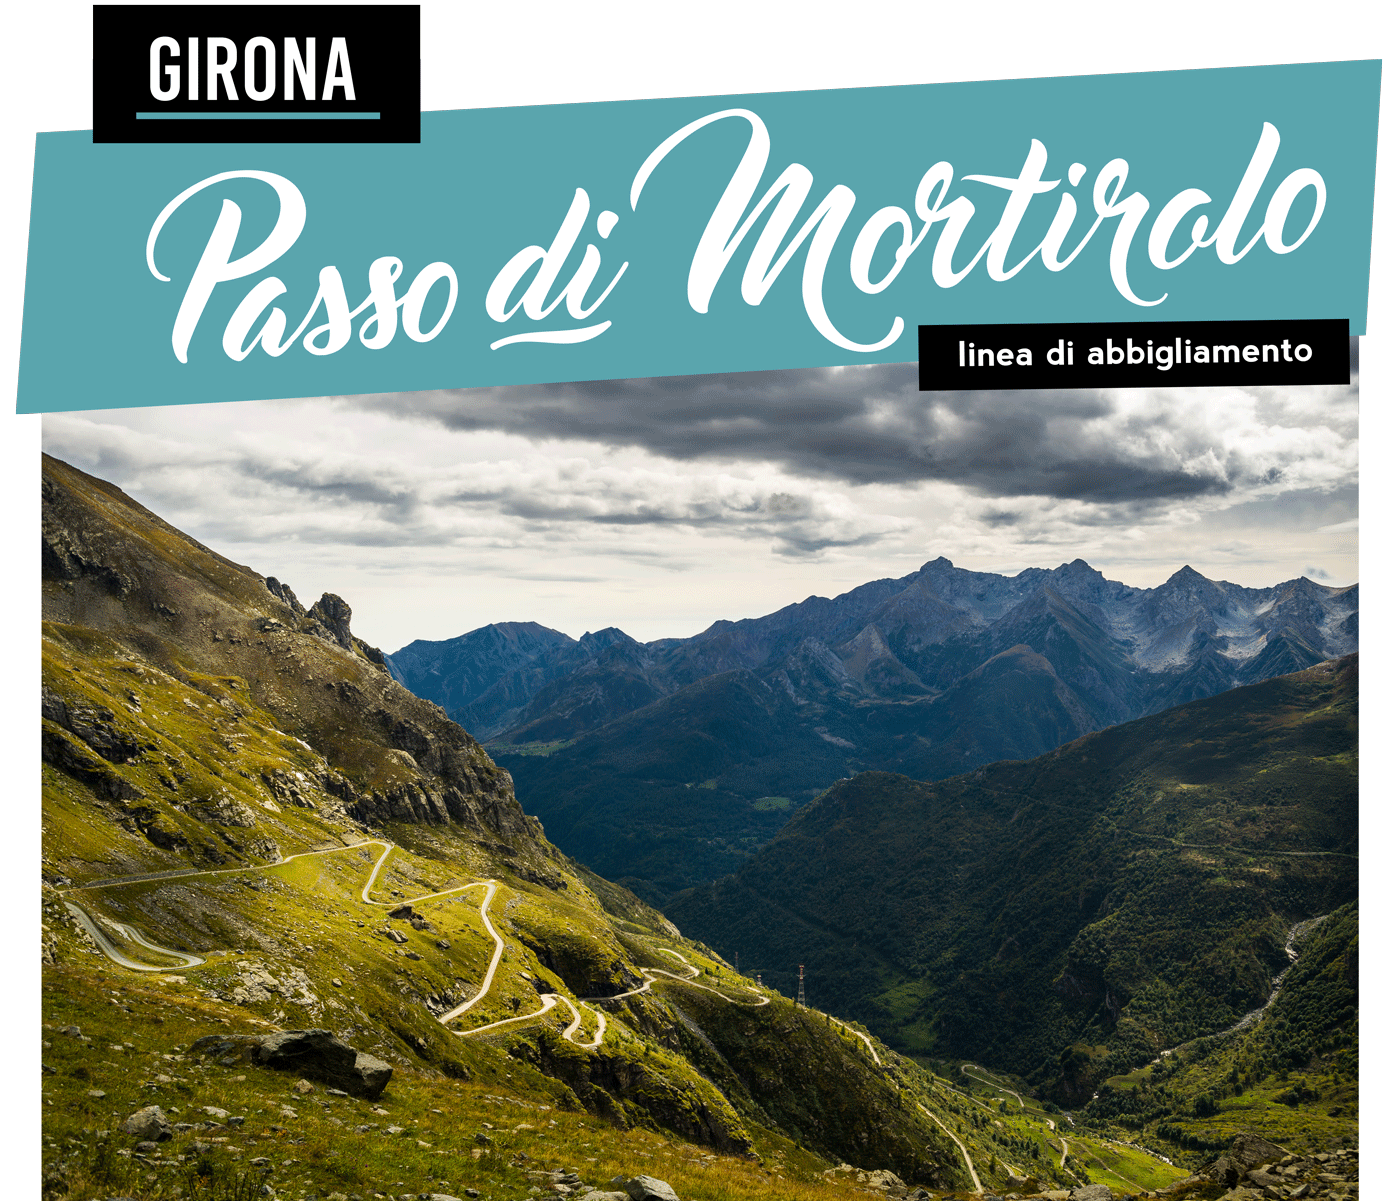 Girona-Vintage-Cycling-Gear-Mountain-Views